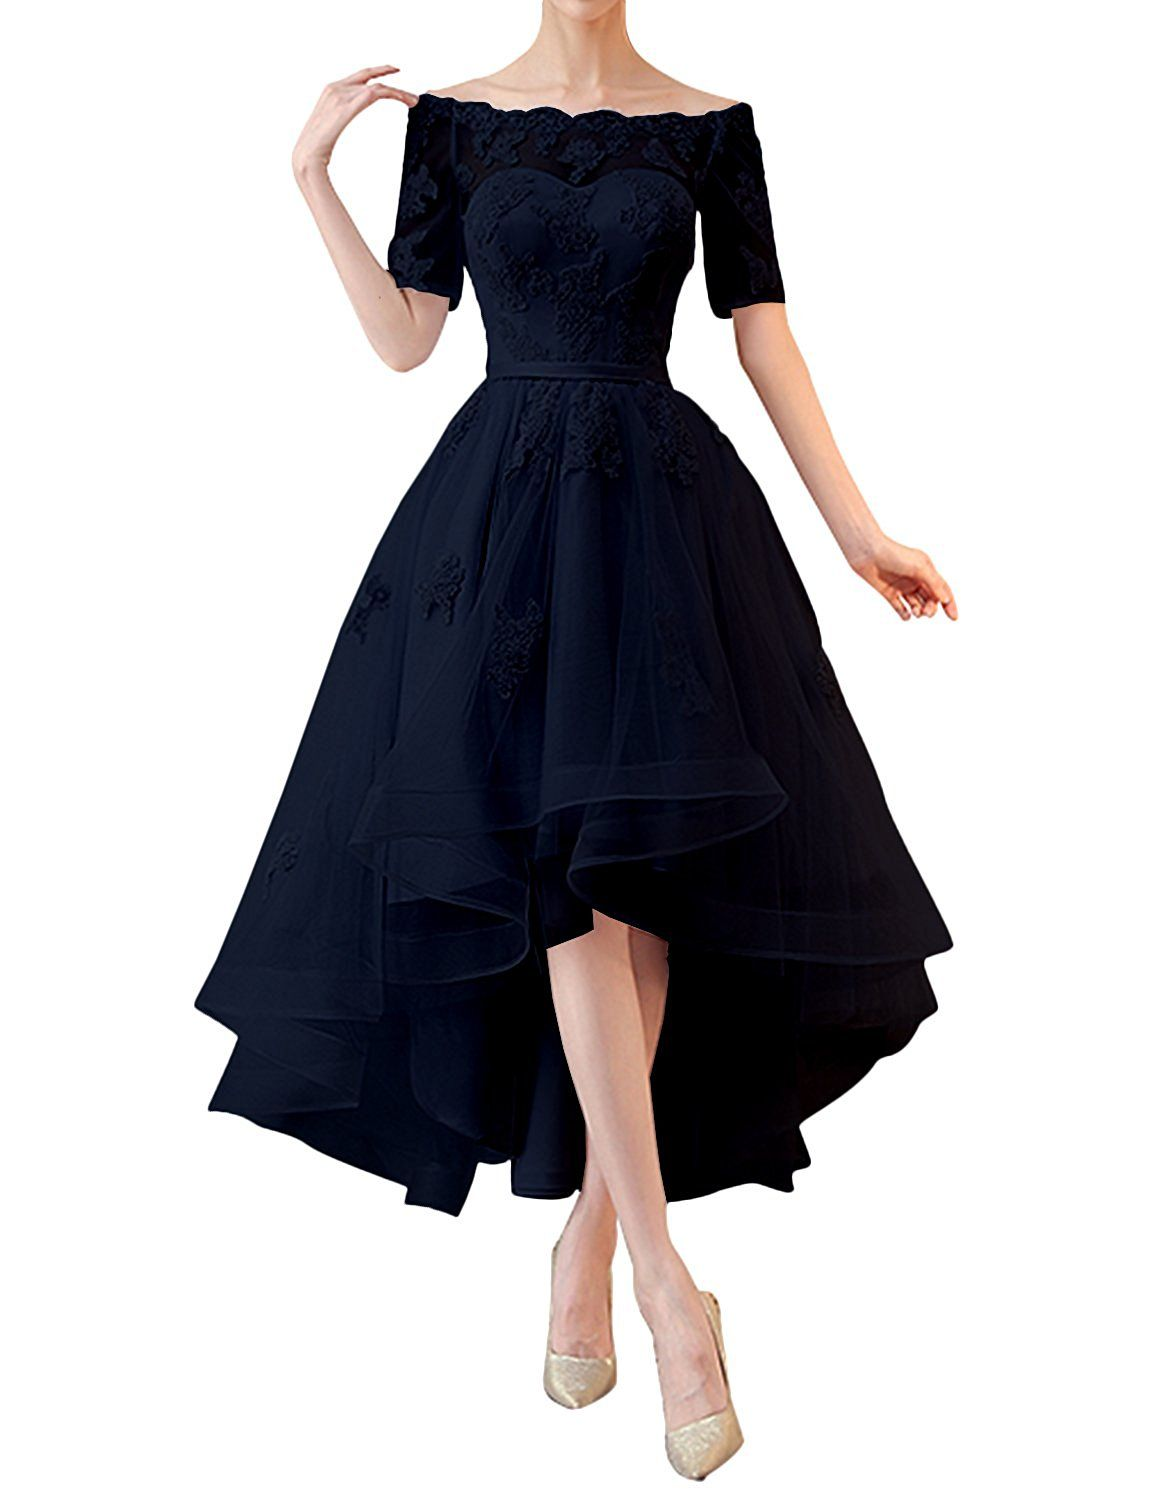 fddcf31d6347 Kevins Bridal High Low Prom Dresses 1/2 Sleeves Off Shoulder Bridesmaid Dress  Appliques Black Size 4 at Amazon Women's Clothing store: